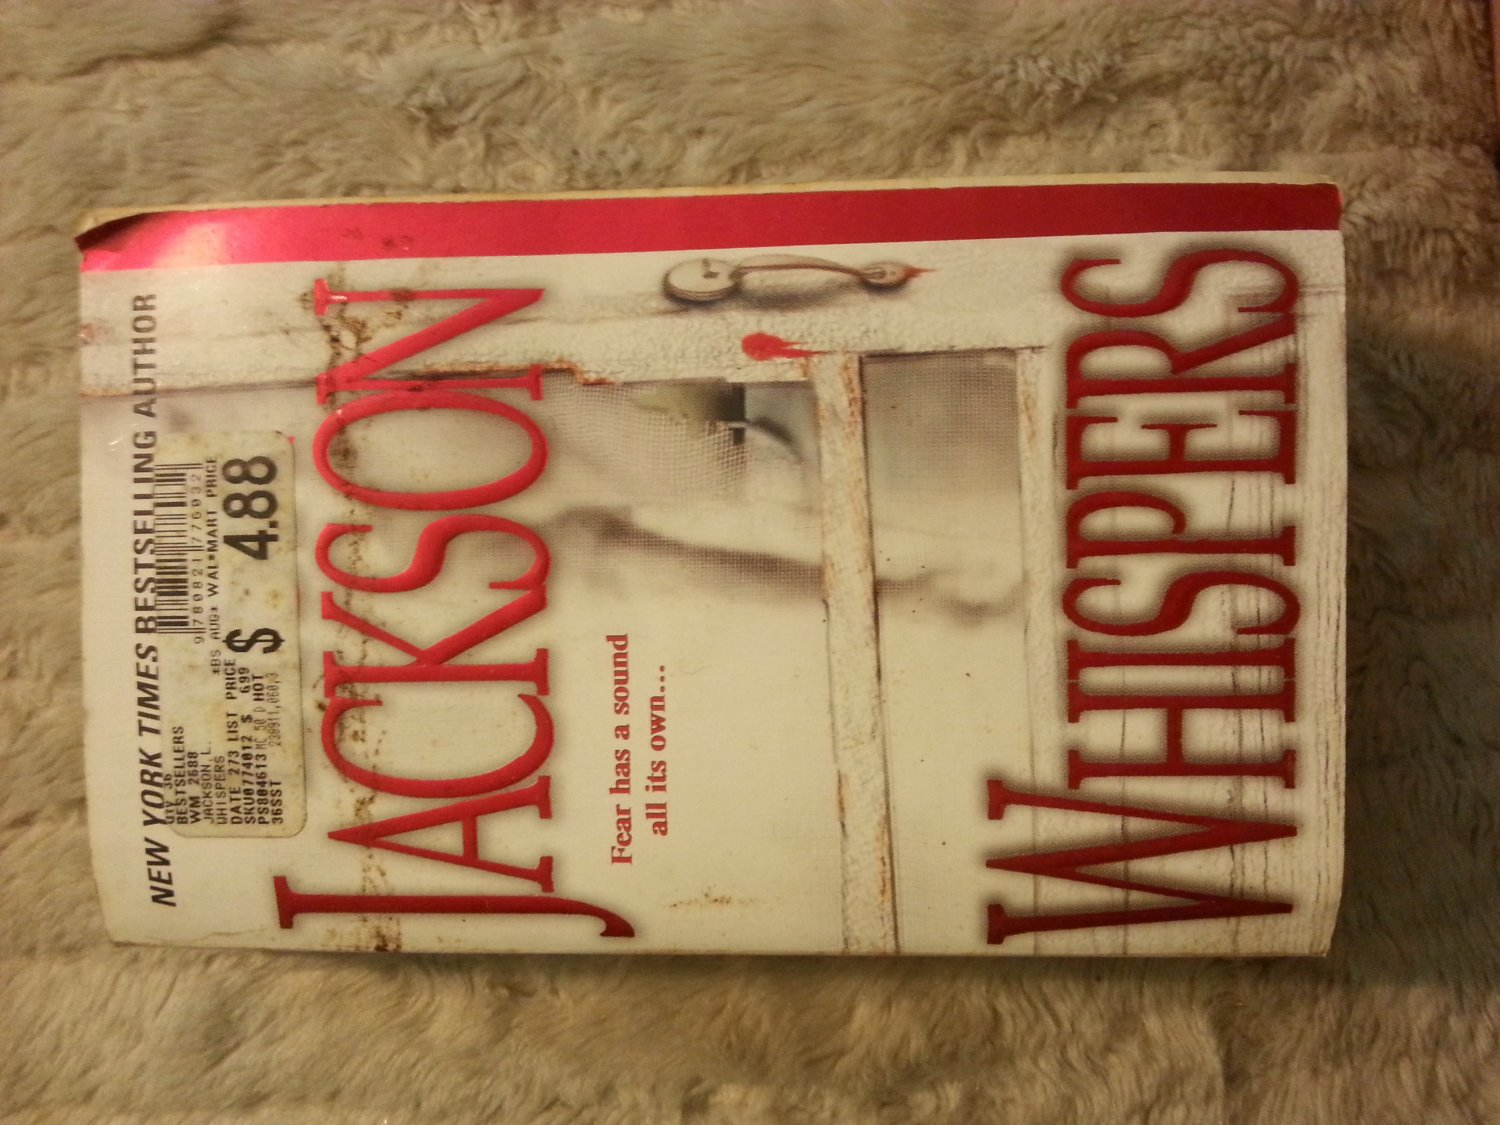 Whispers by Lisa Jackson (2003) Paperback Book ISBN 0821776037